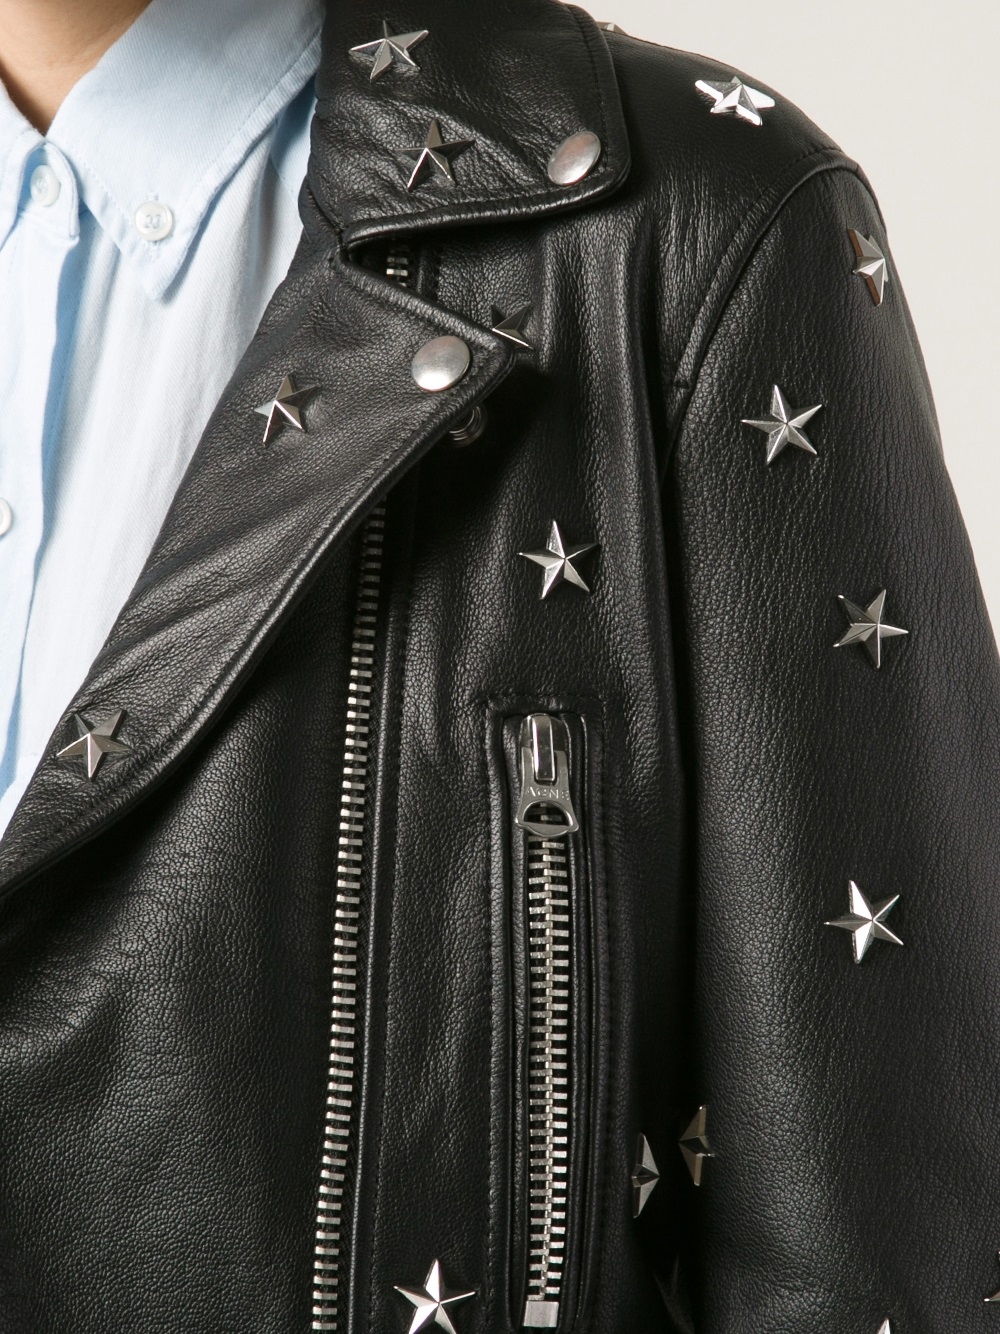 clothes jacket and how leather or studs stud vintage punk with a to metal watch